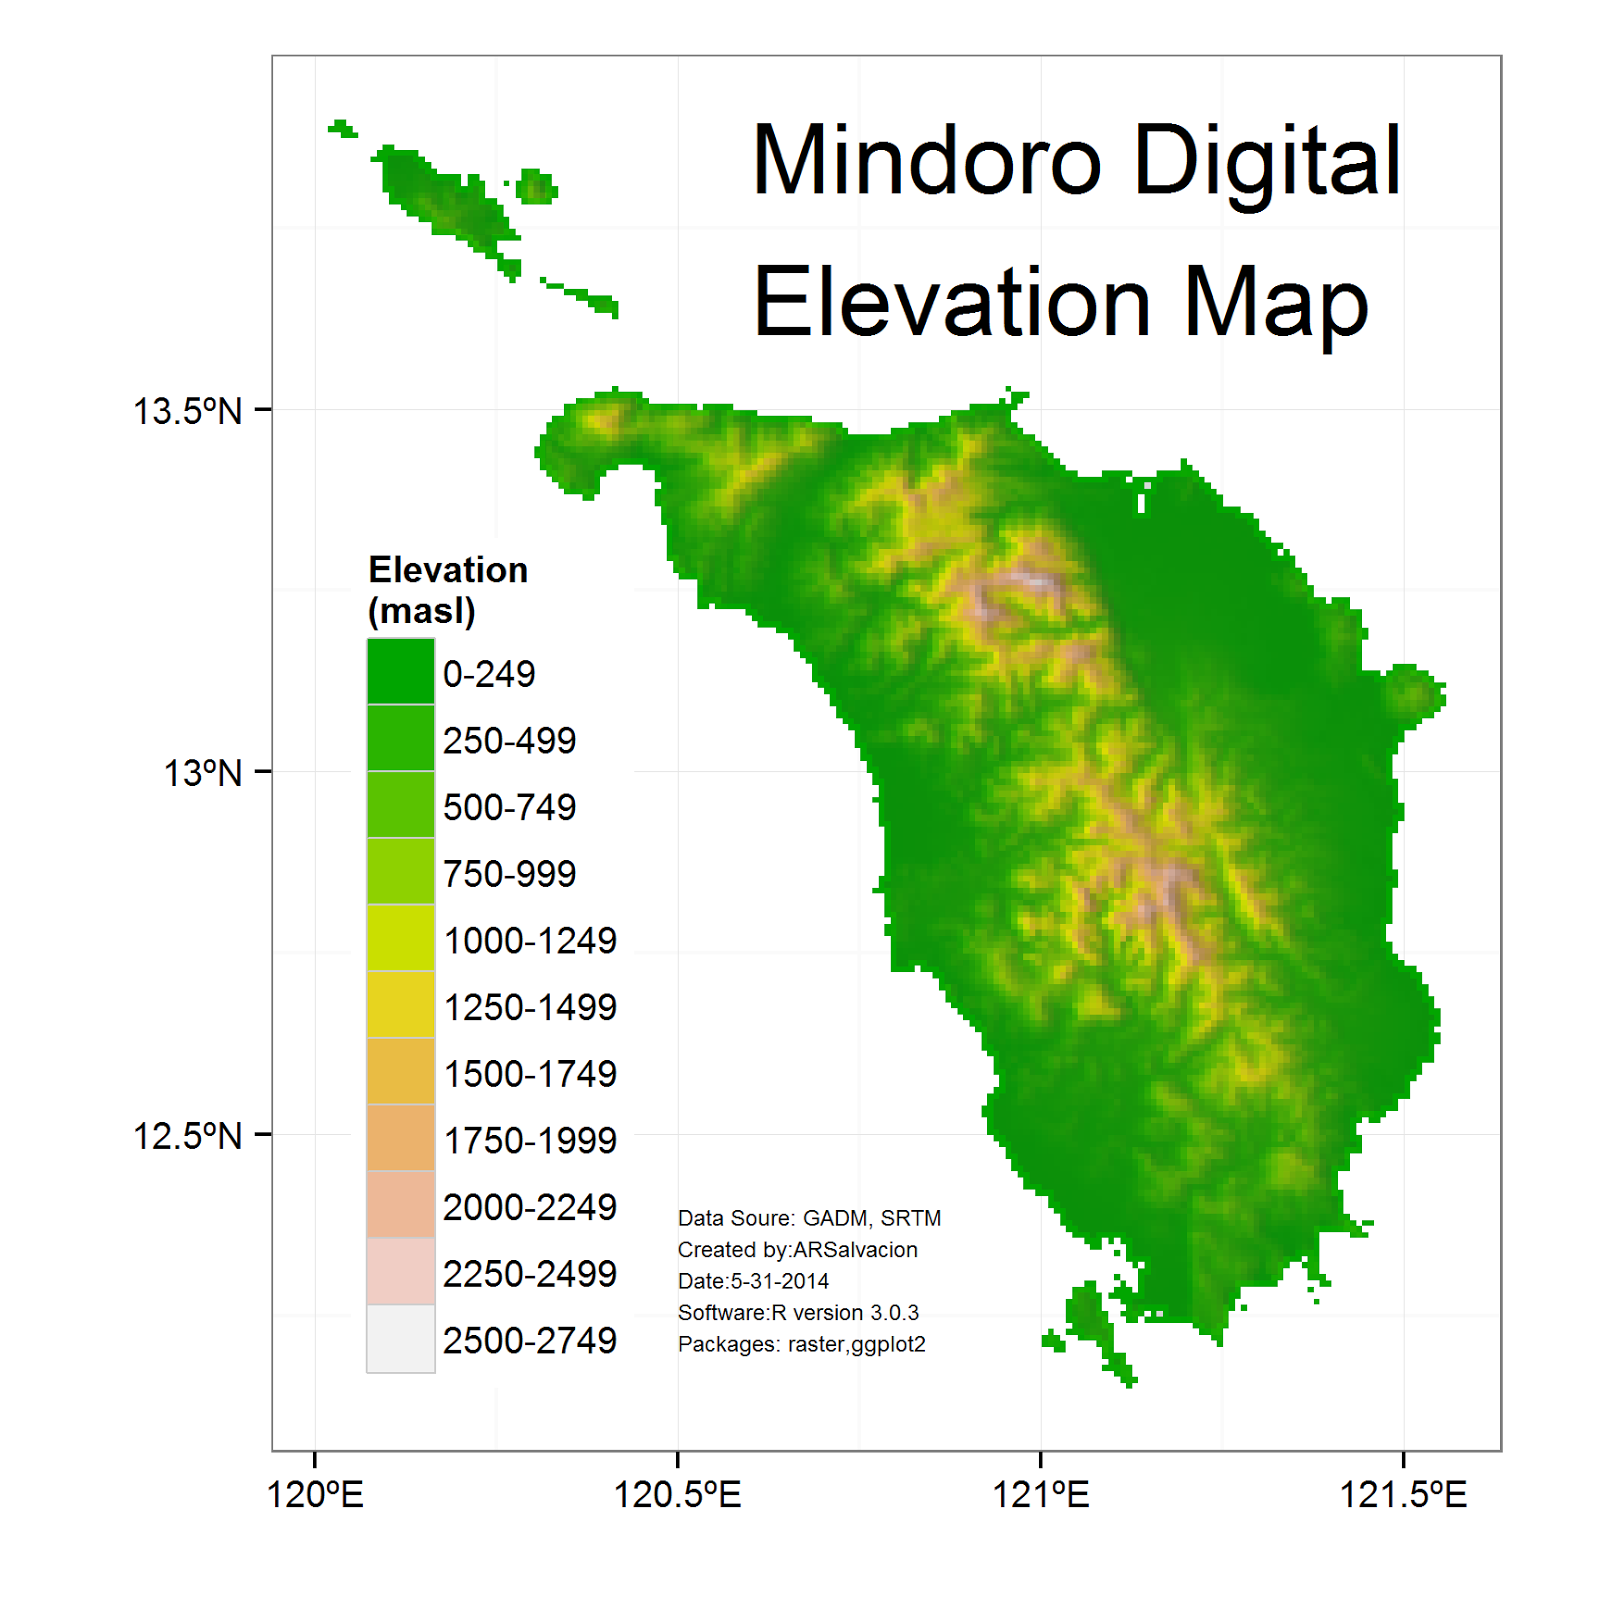 Mindoro Digital Elevation Map Updated R Bloggers